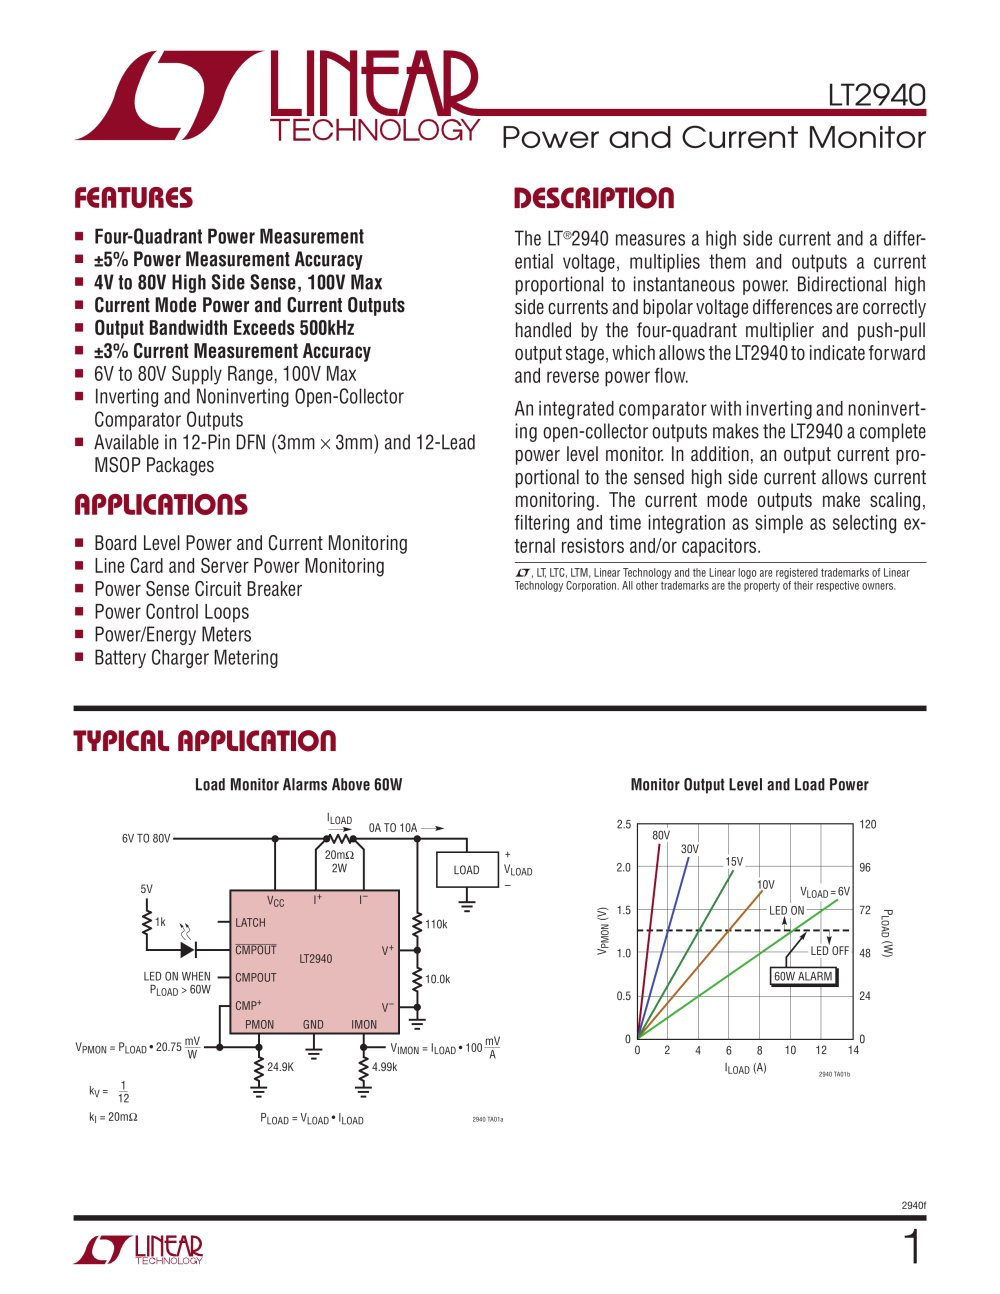 Lt2940 Power And Current Monitor Linear Technology Pdf Synchronous Buckboost Led Driver Controller 1 24 Pages